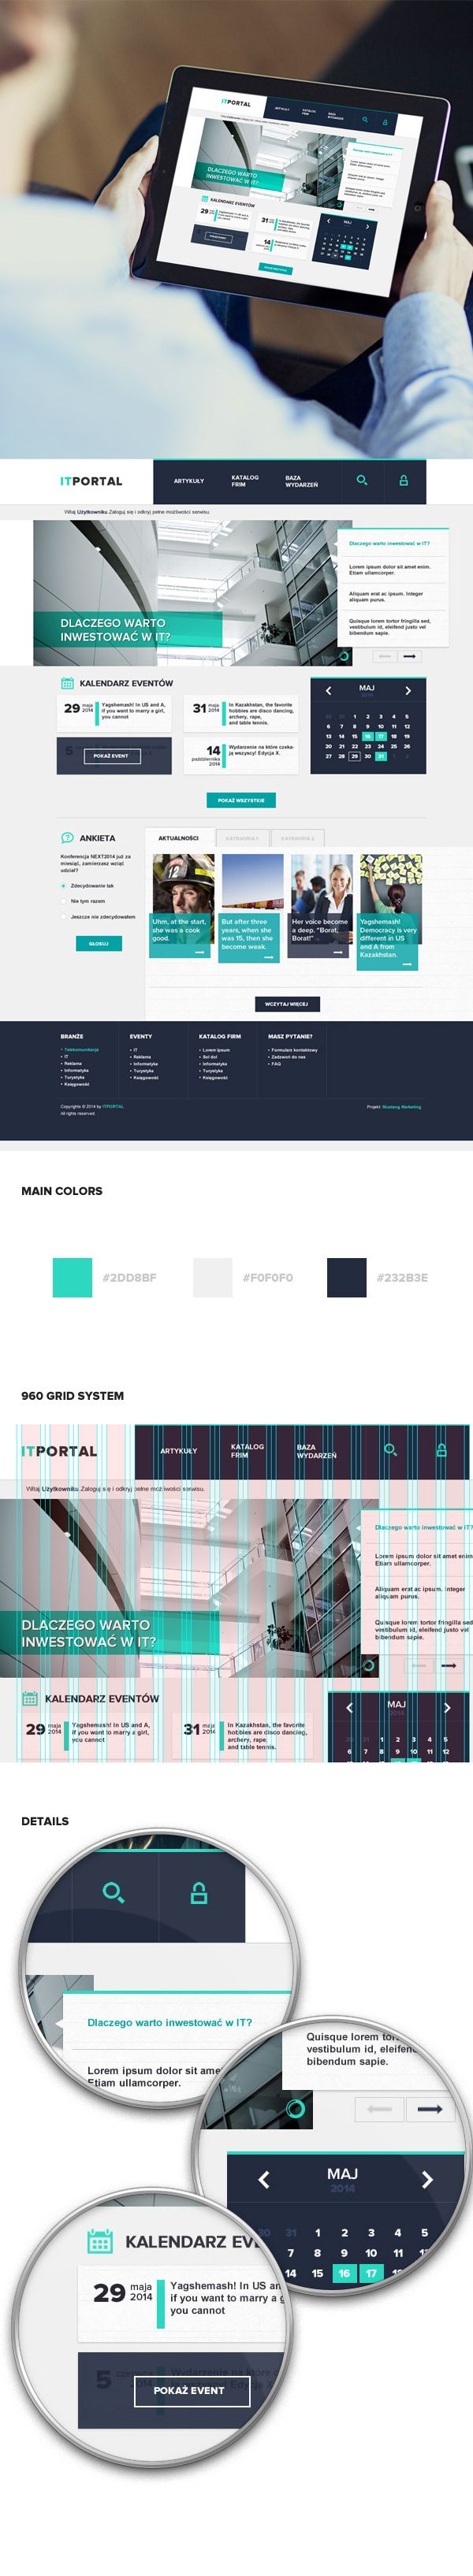 Cool overlapping panel design #web #layout - IT Portal by Tomasz Gawłowski, via Behance